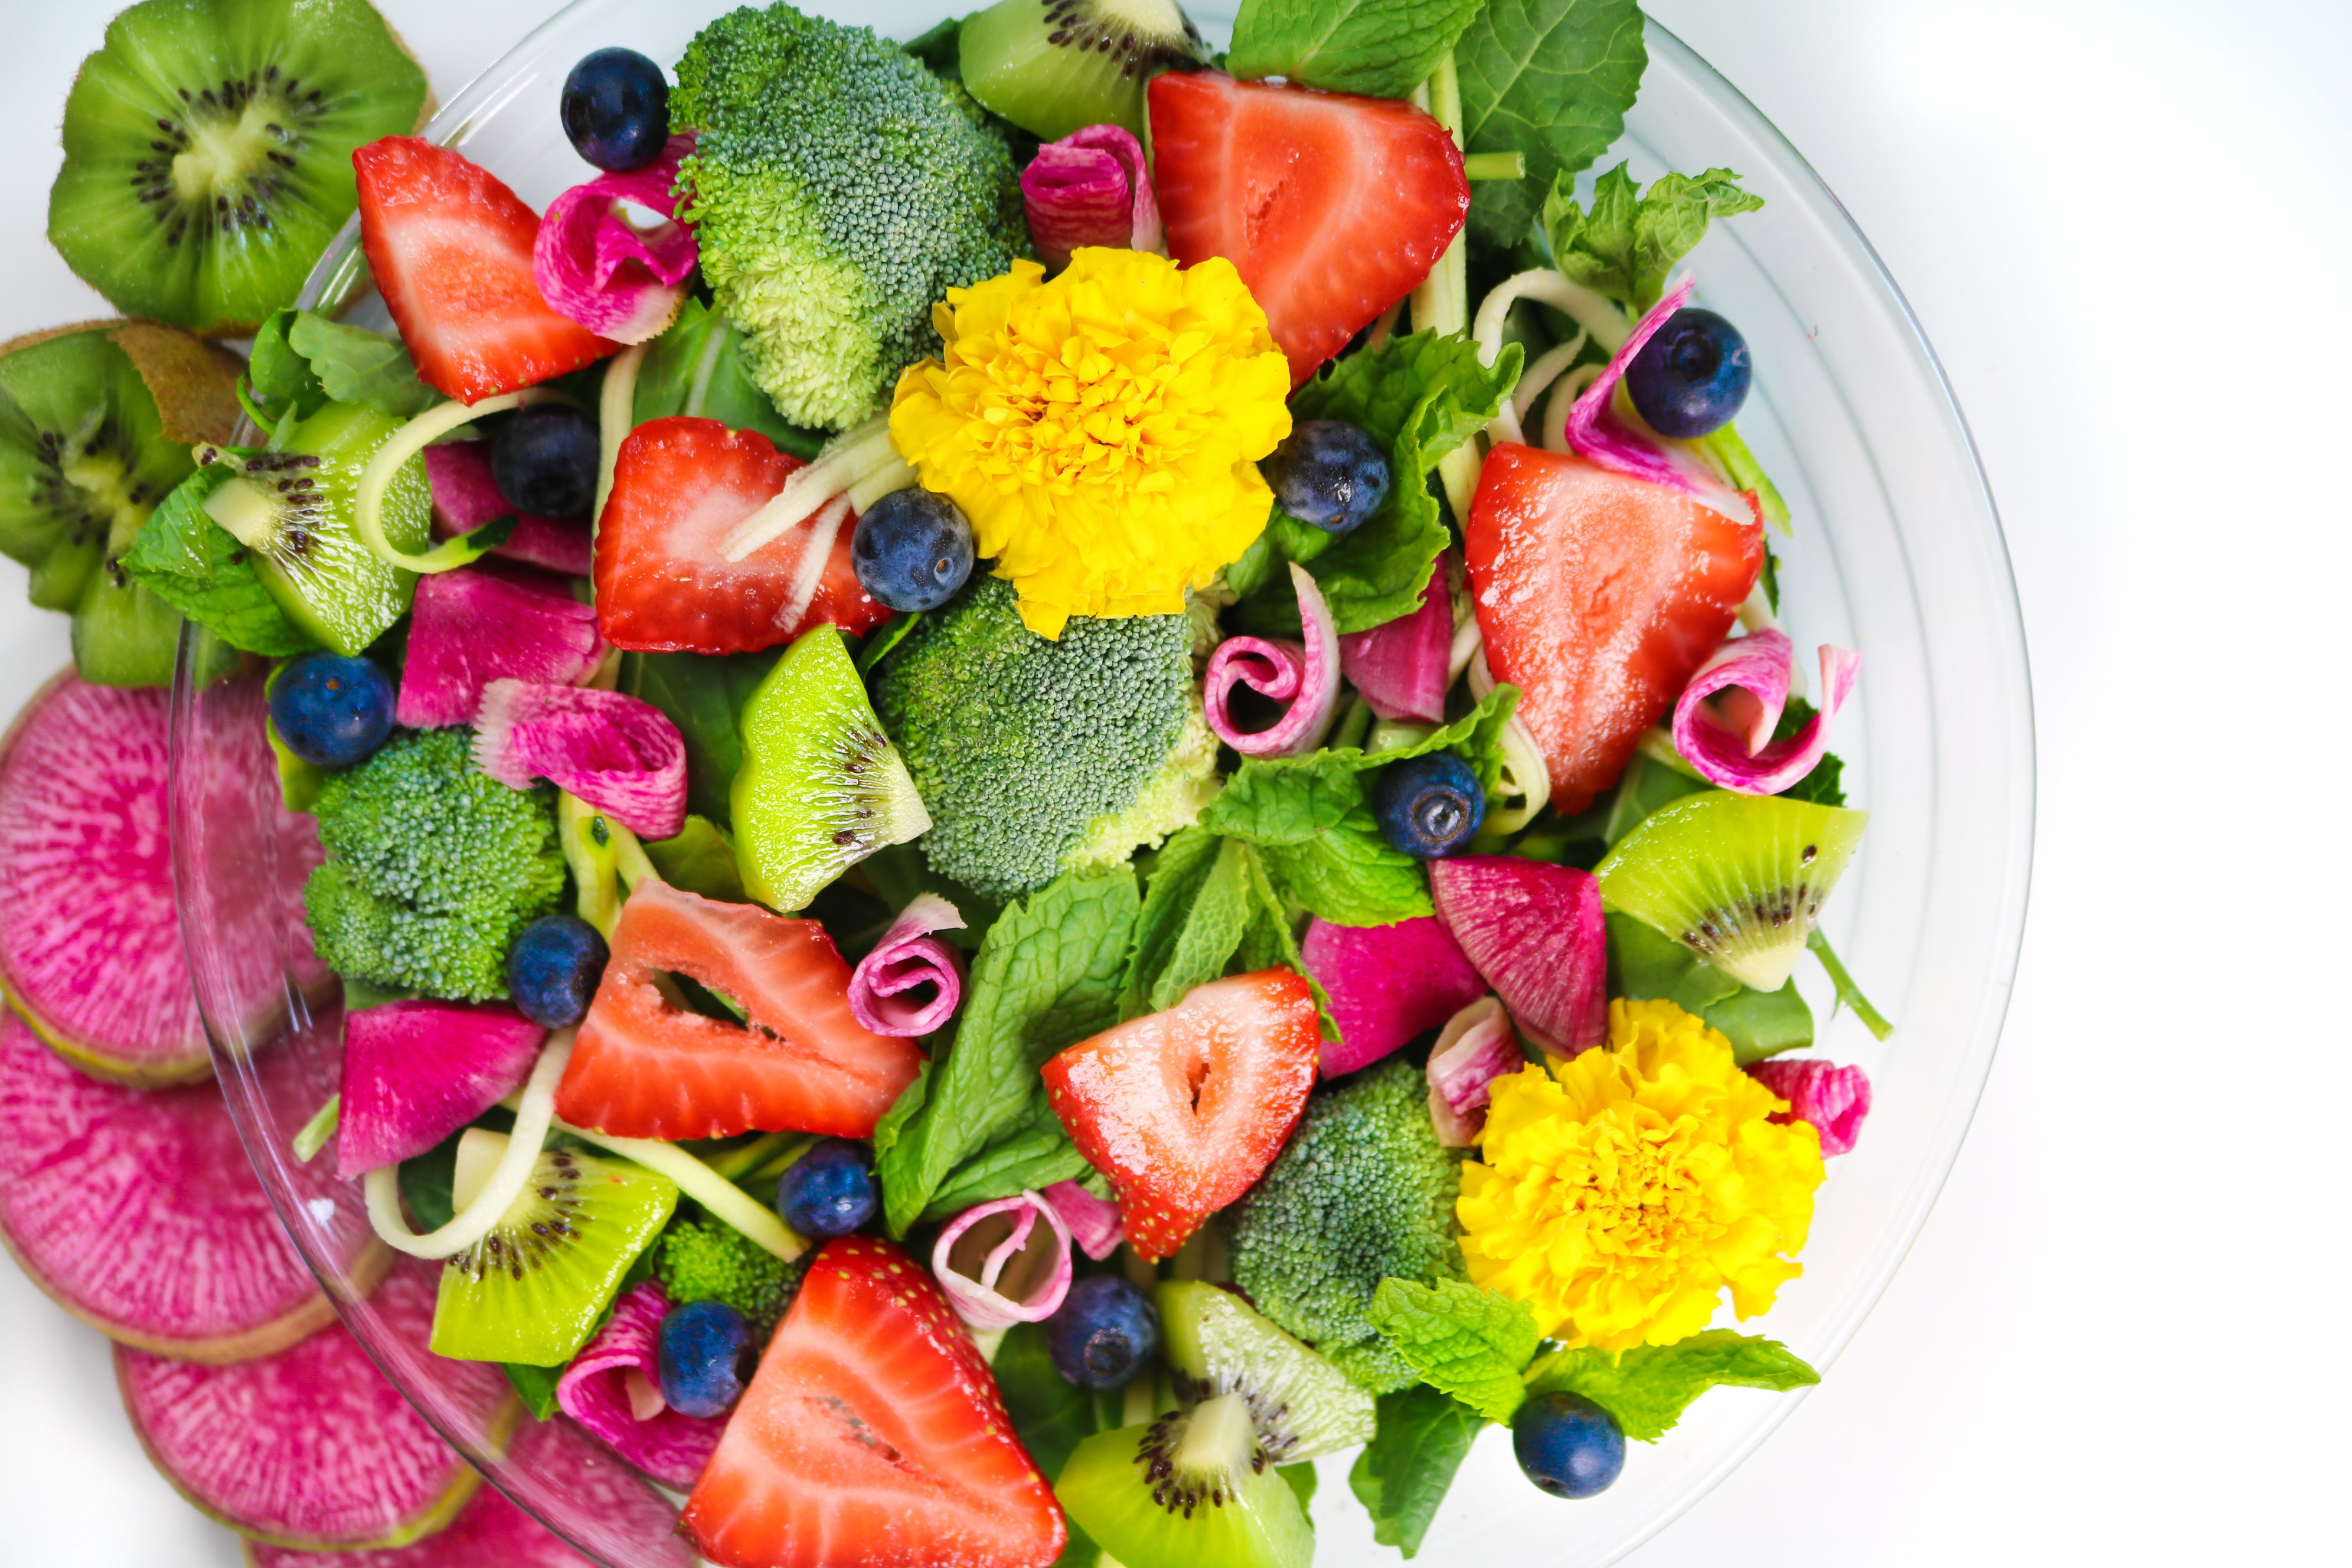 Summery Strawberry Kiwi Salad Dressing. livingwholesarahdavis.com